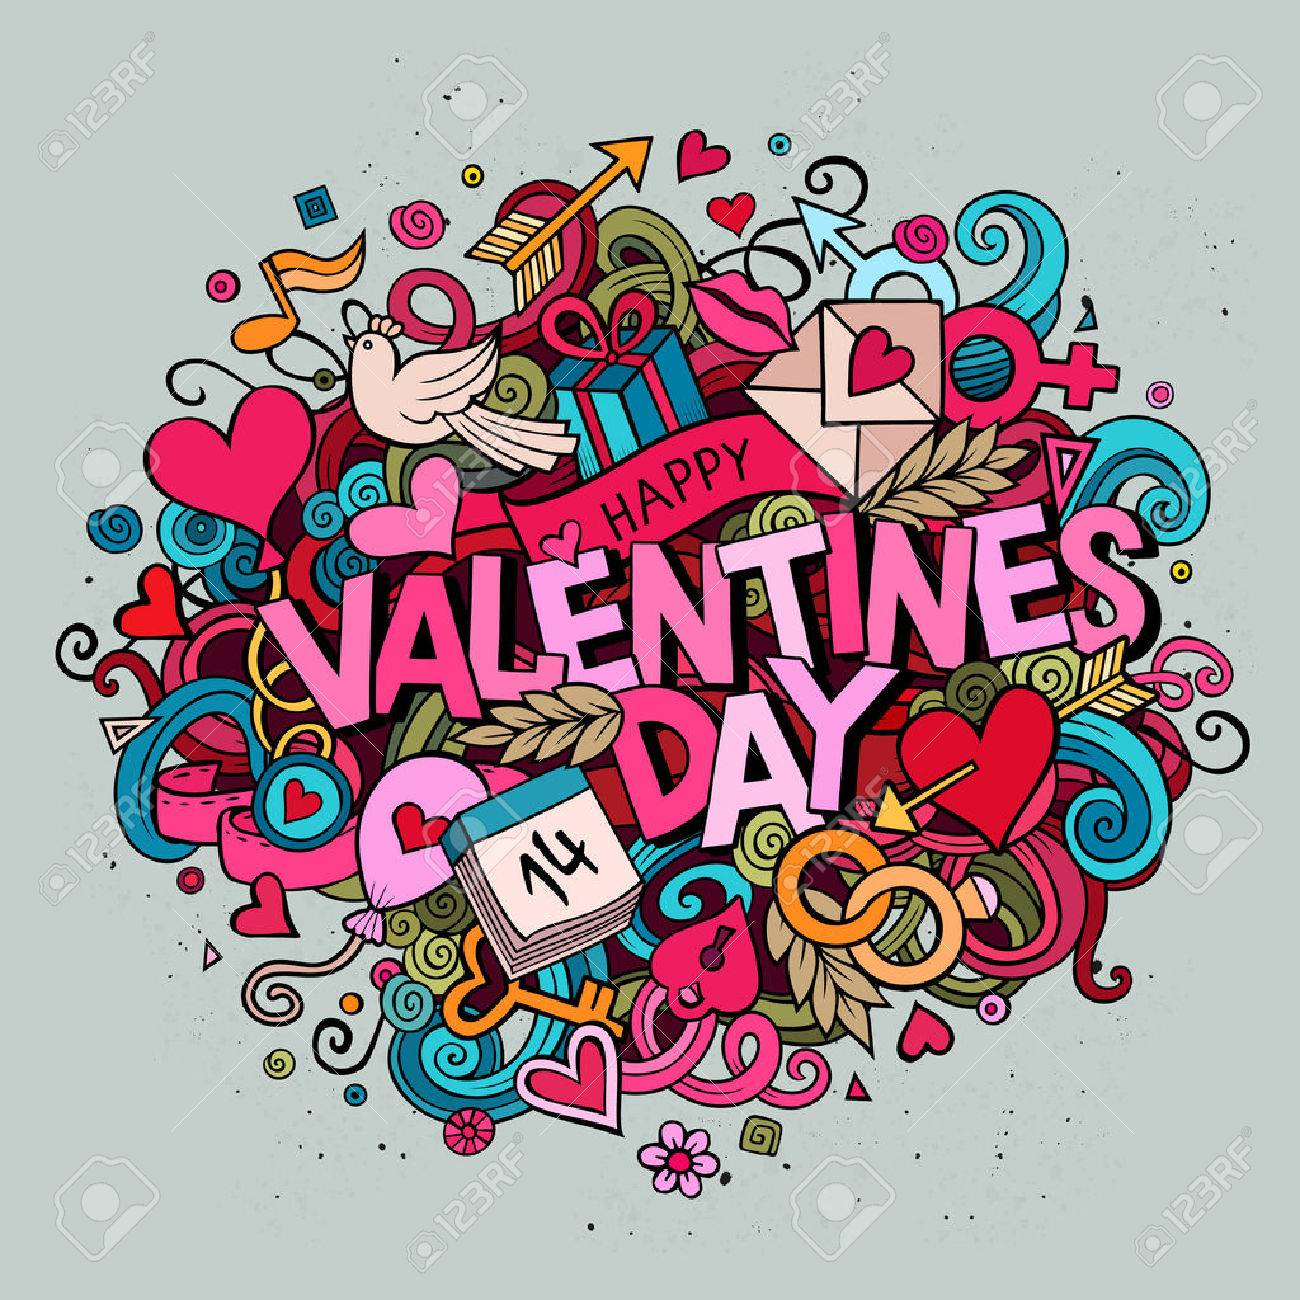 Cartoon Vector Hand Drawn Doodle Happy Valentines Day Illustration